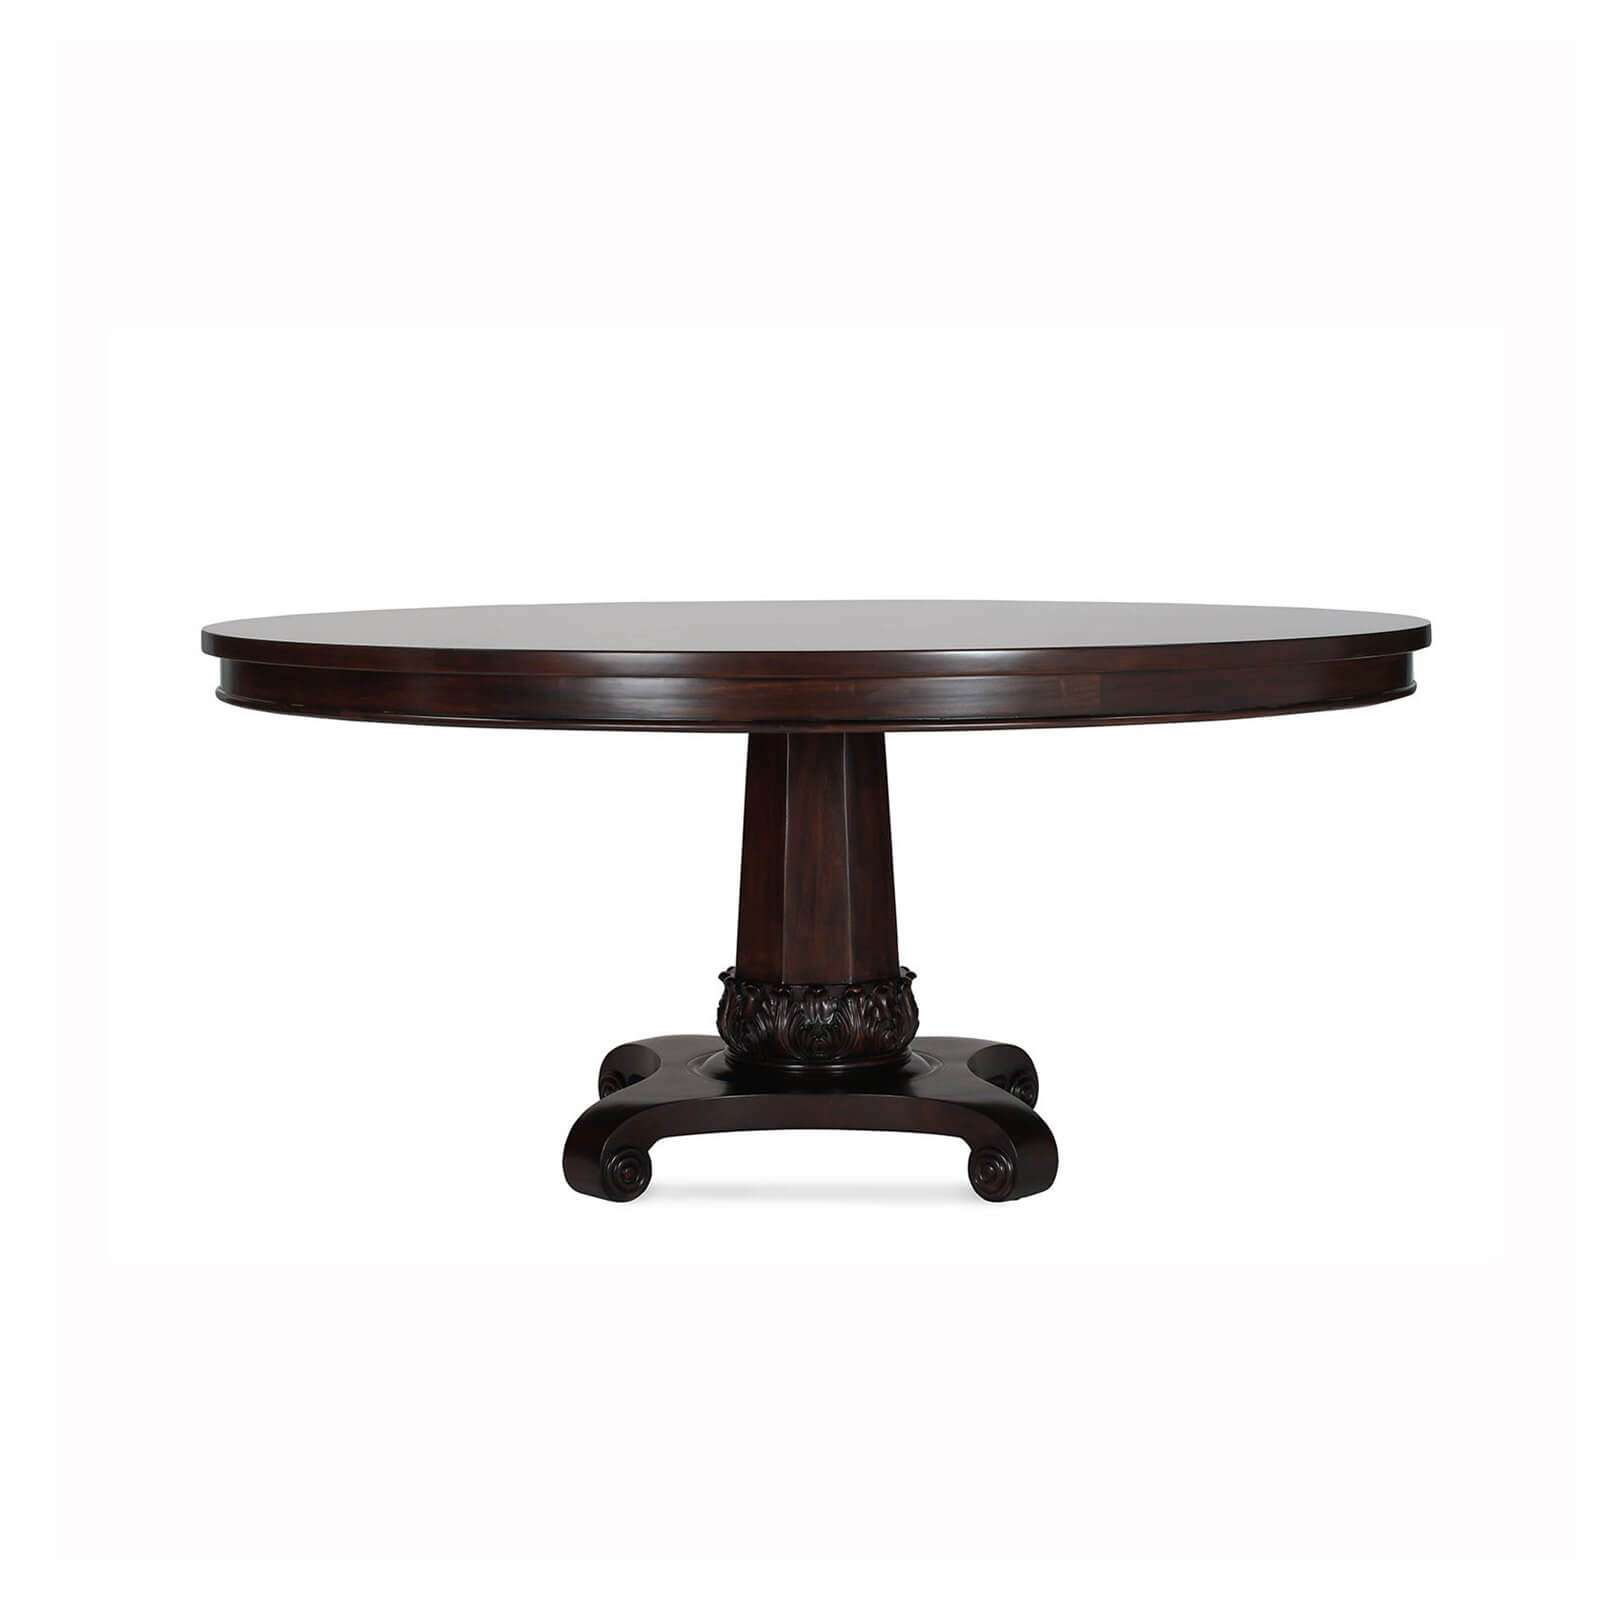 CAPE COLONY DINING TABLE